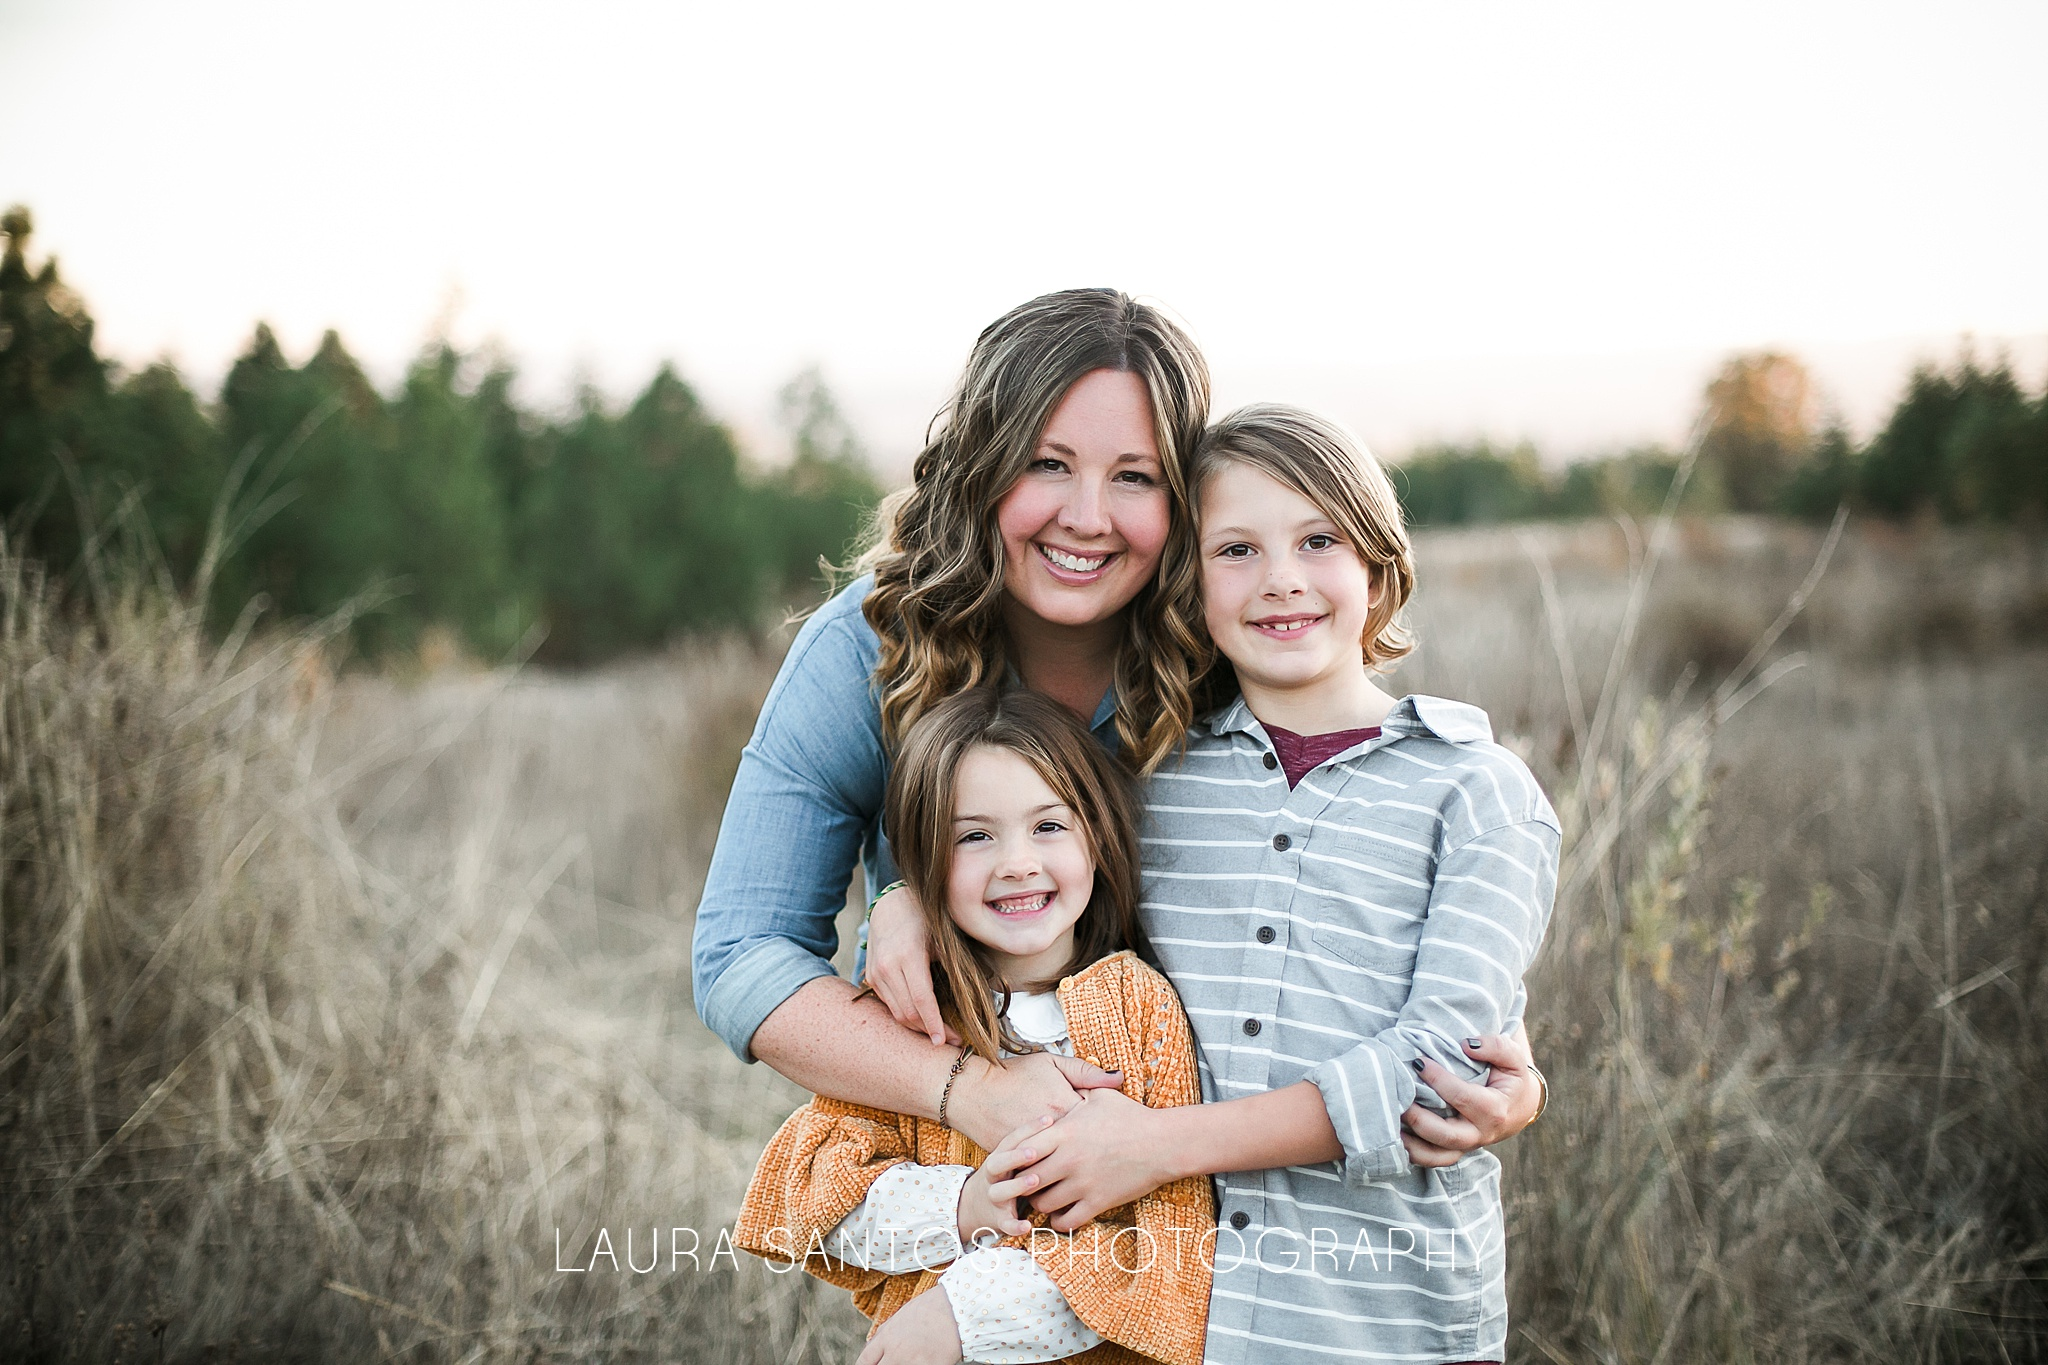 Laura Santos Photography Portland Oregon Family Photographer_0888.jpg